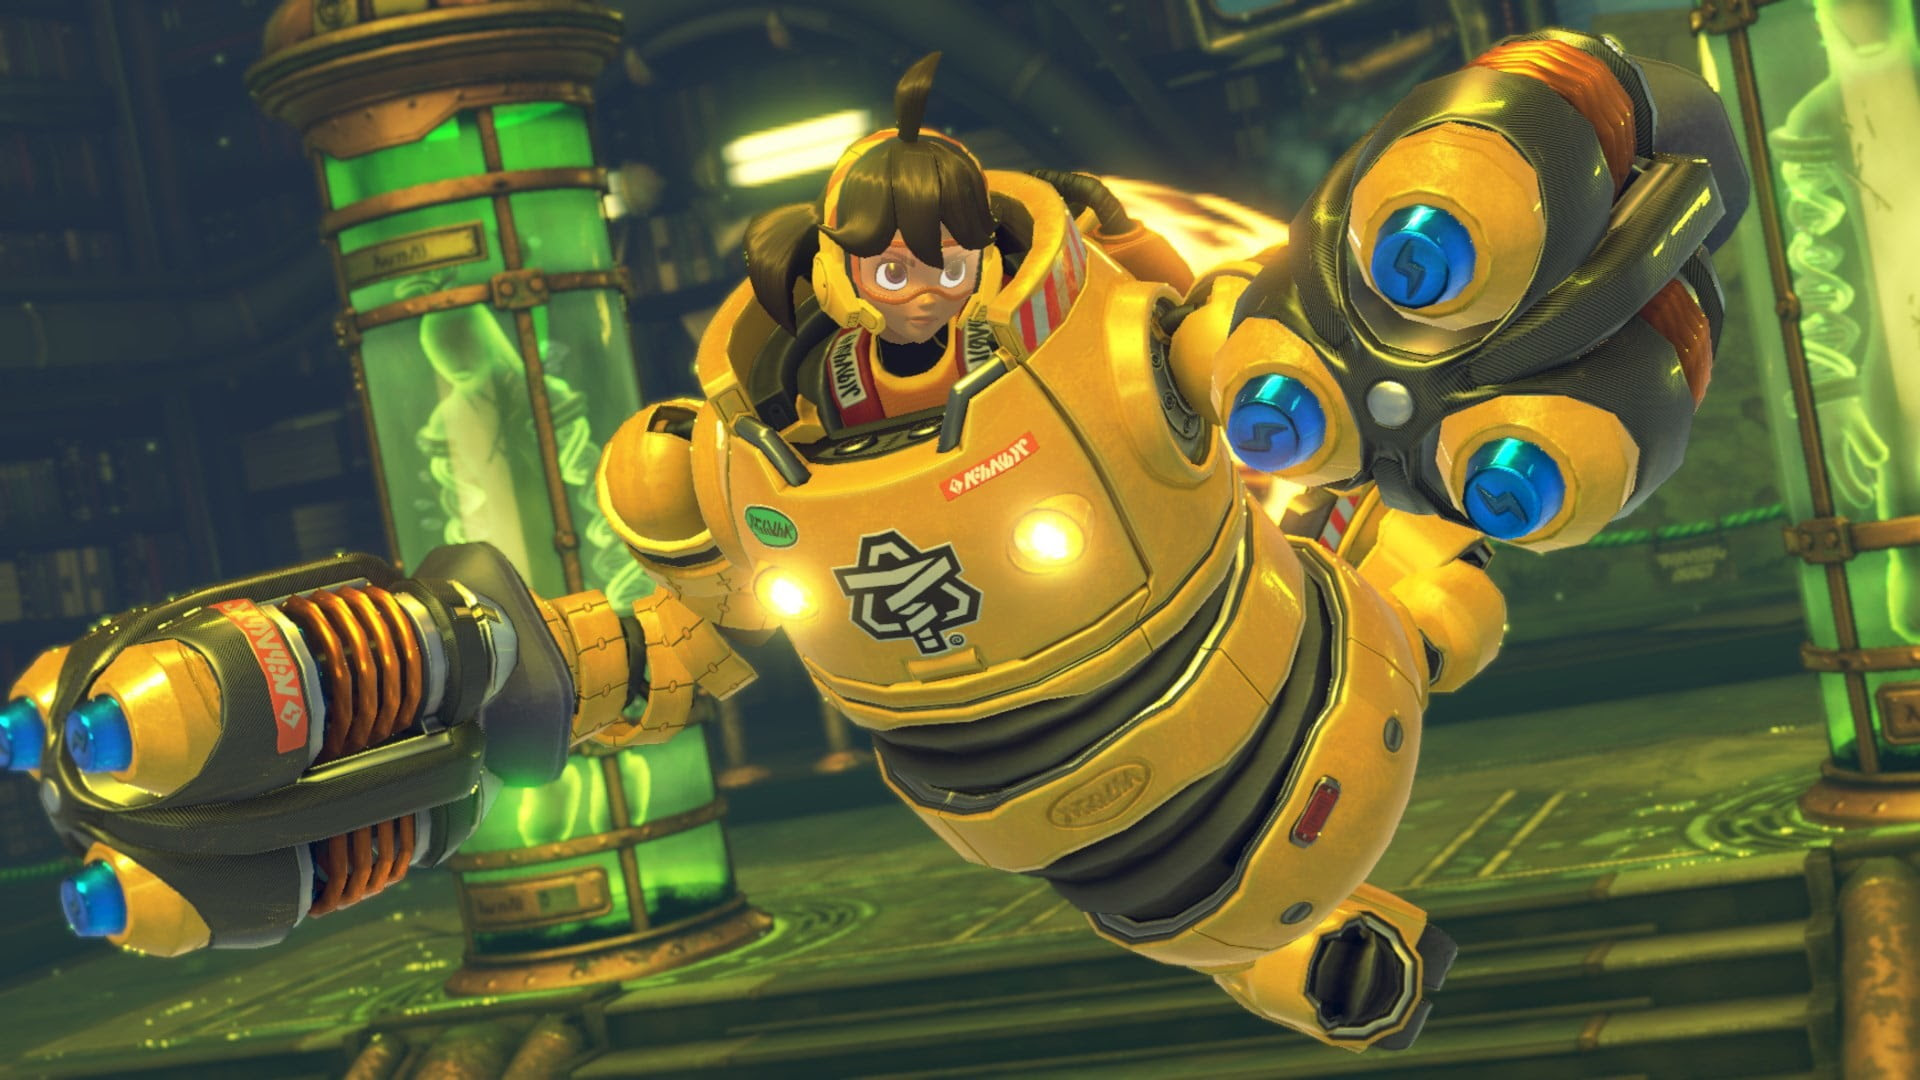 Arms only takes up 2.2GB on Switch, which is somehow much less than NBA Playgrounds screenshot